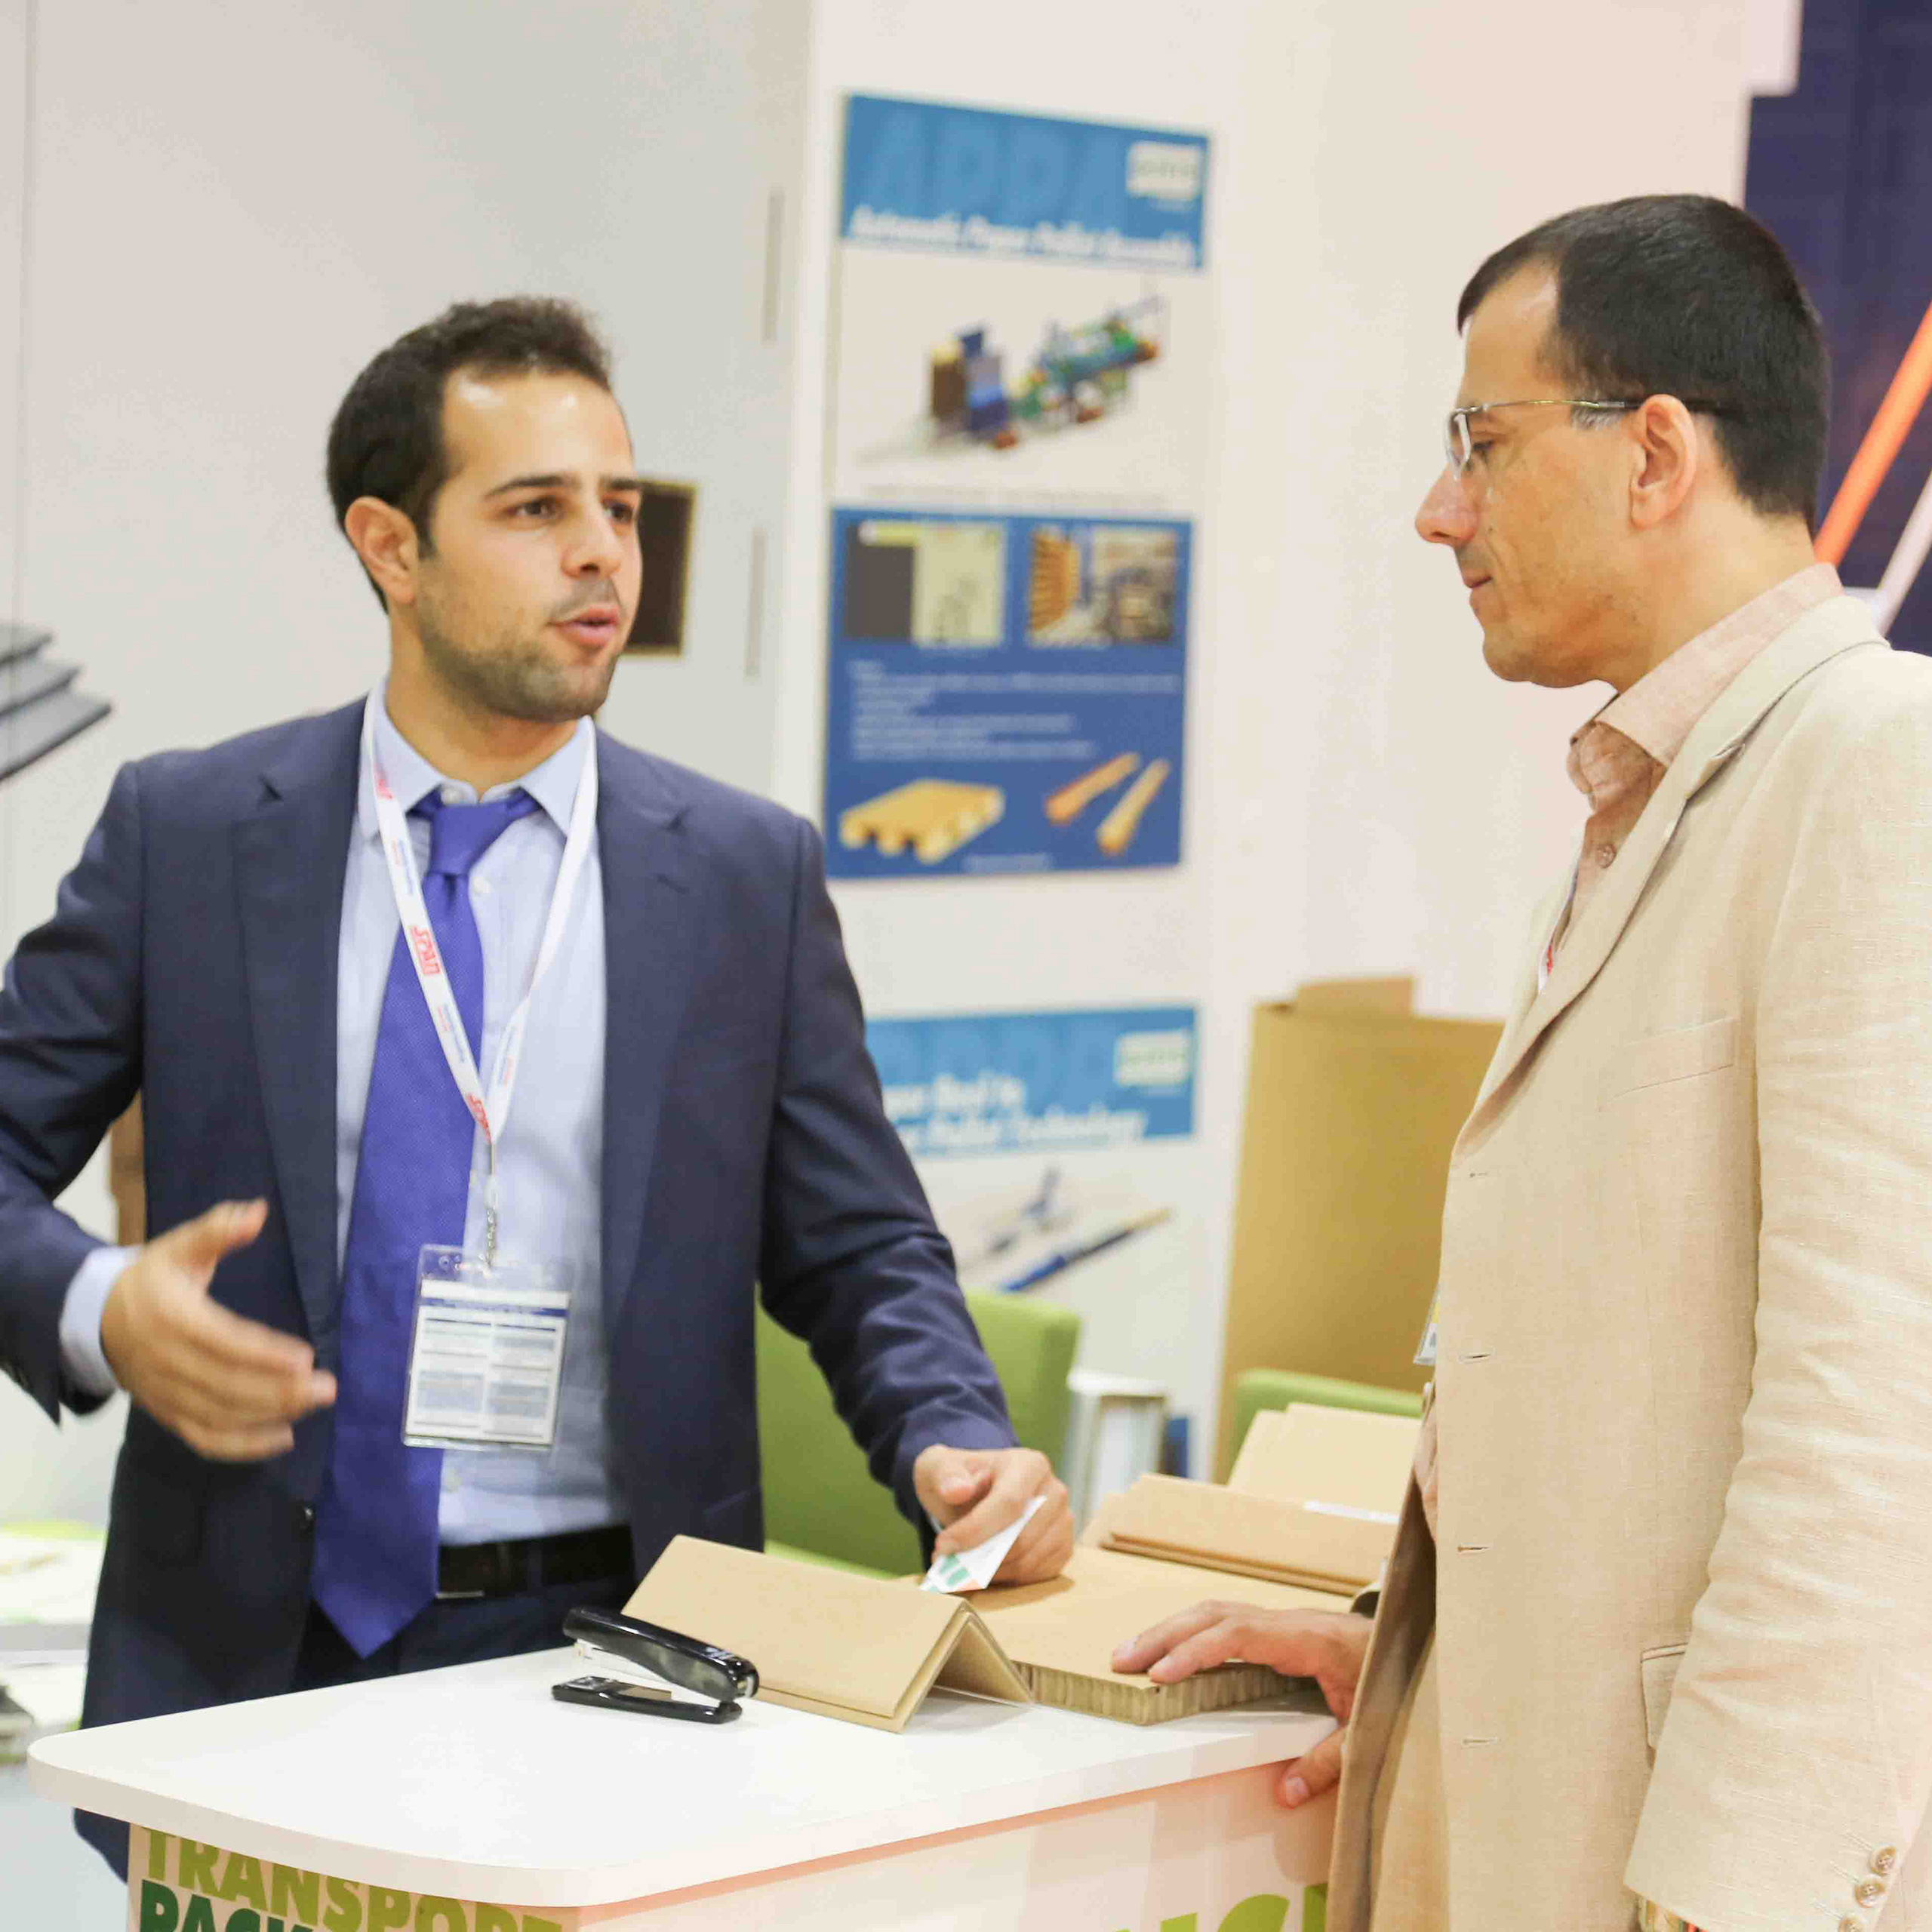 Materials Handling Middle East - Saudi Arabia and UAE set to be largest players in USD 498.5 million GCC market for automated materials handling equipment